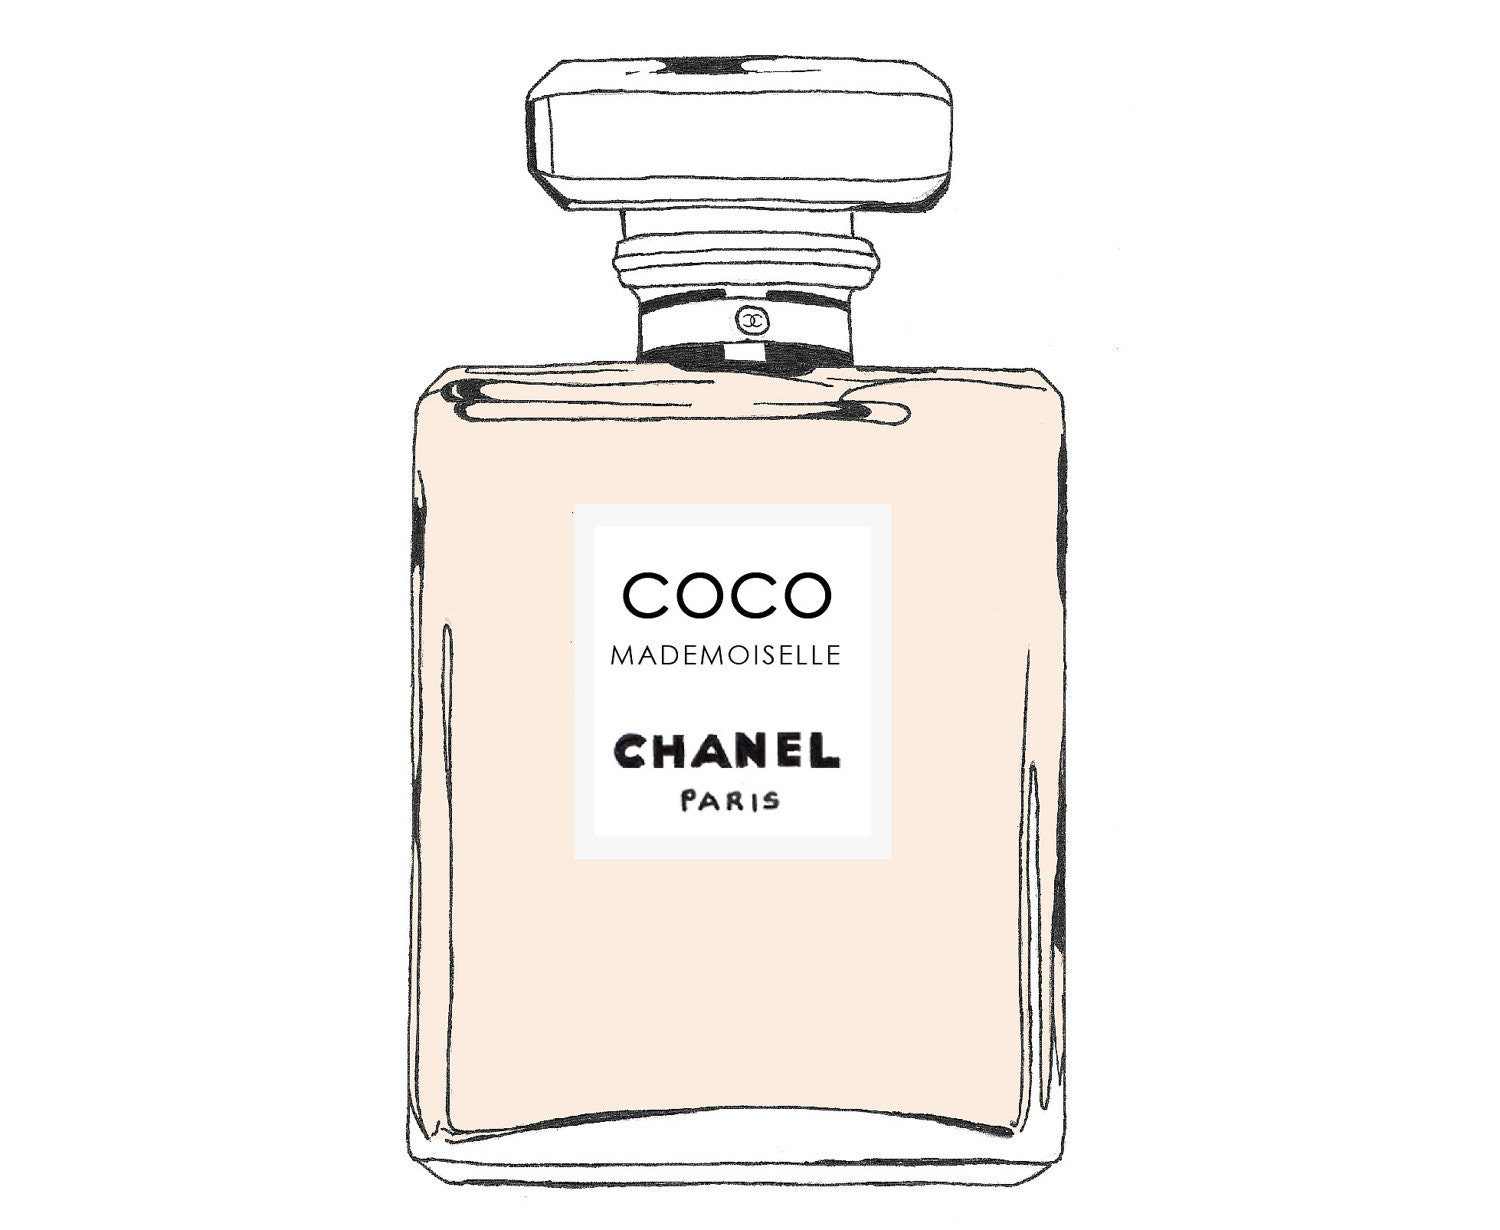 chanel coco mademoiselle perfume bottle fashion by. Black Bedroom Furniture Sets. Home Design Ideas